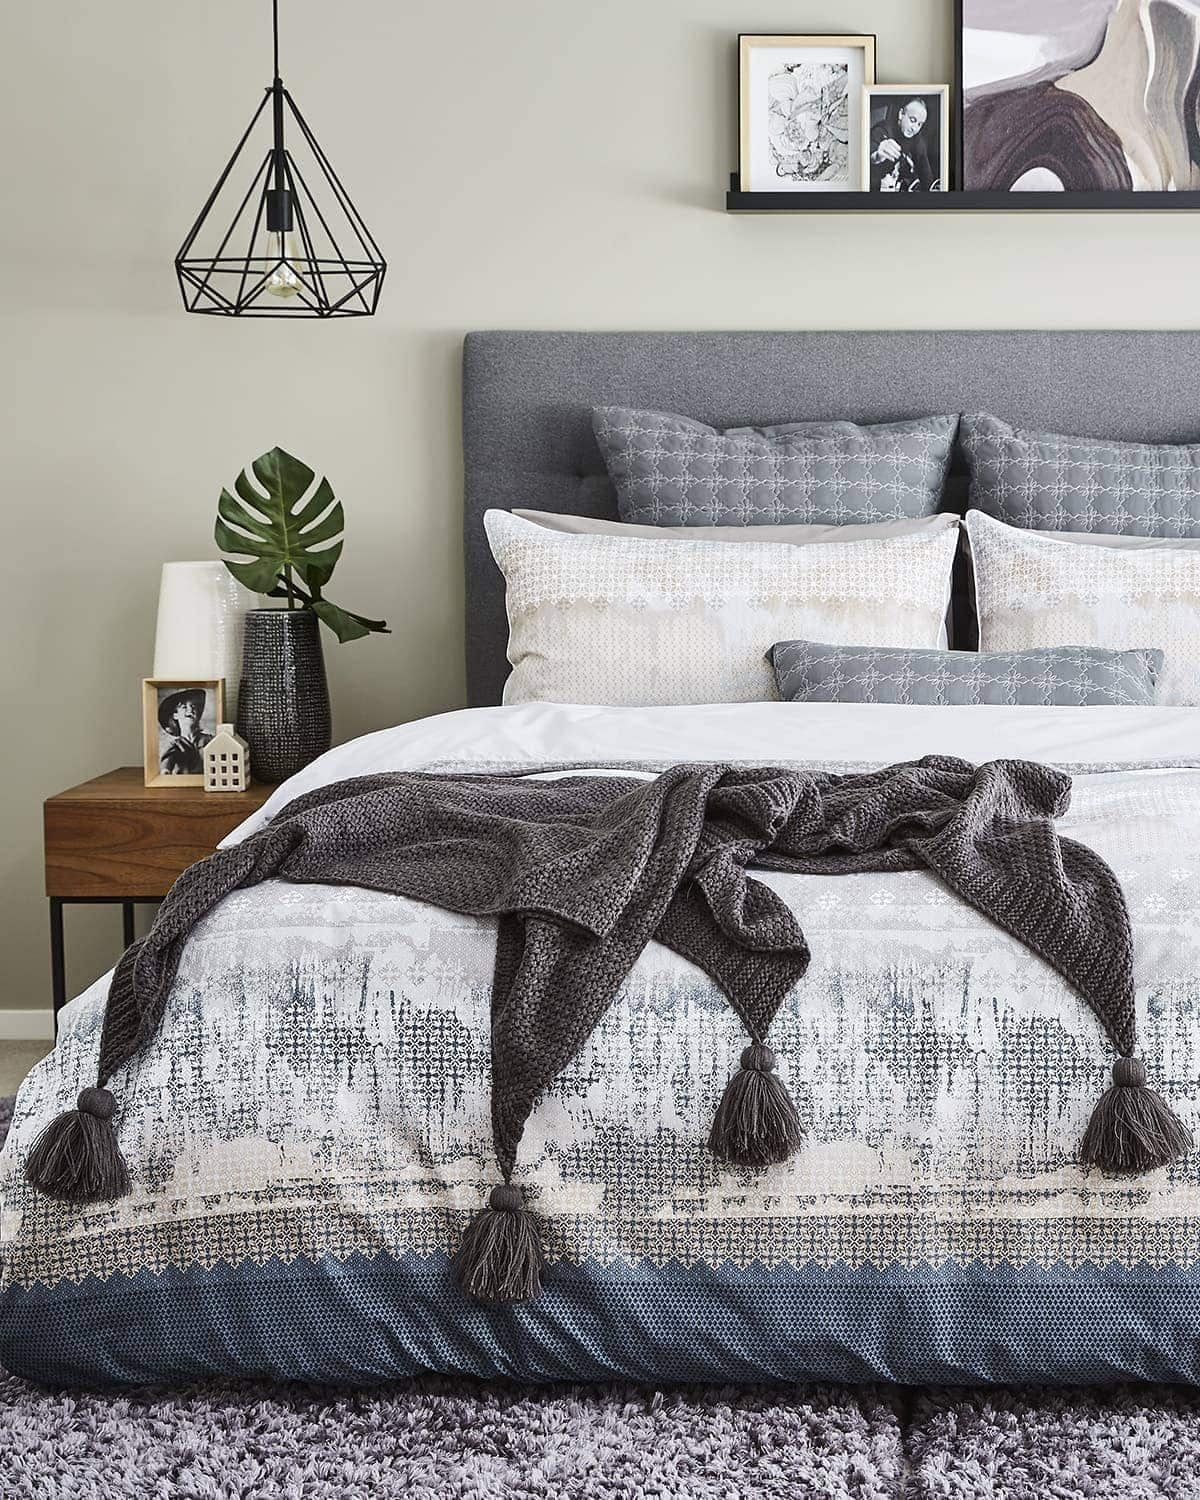 winter bedroom styling with lorraine lea conor quilt and black mesh pendant lights over bedside